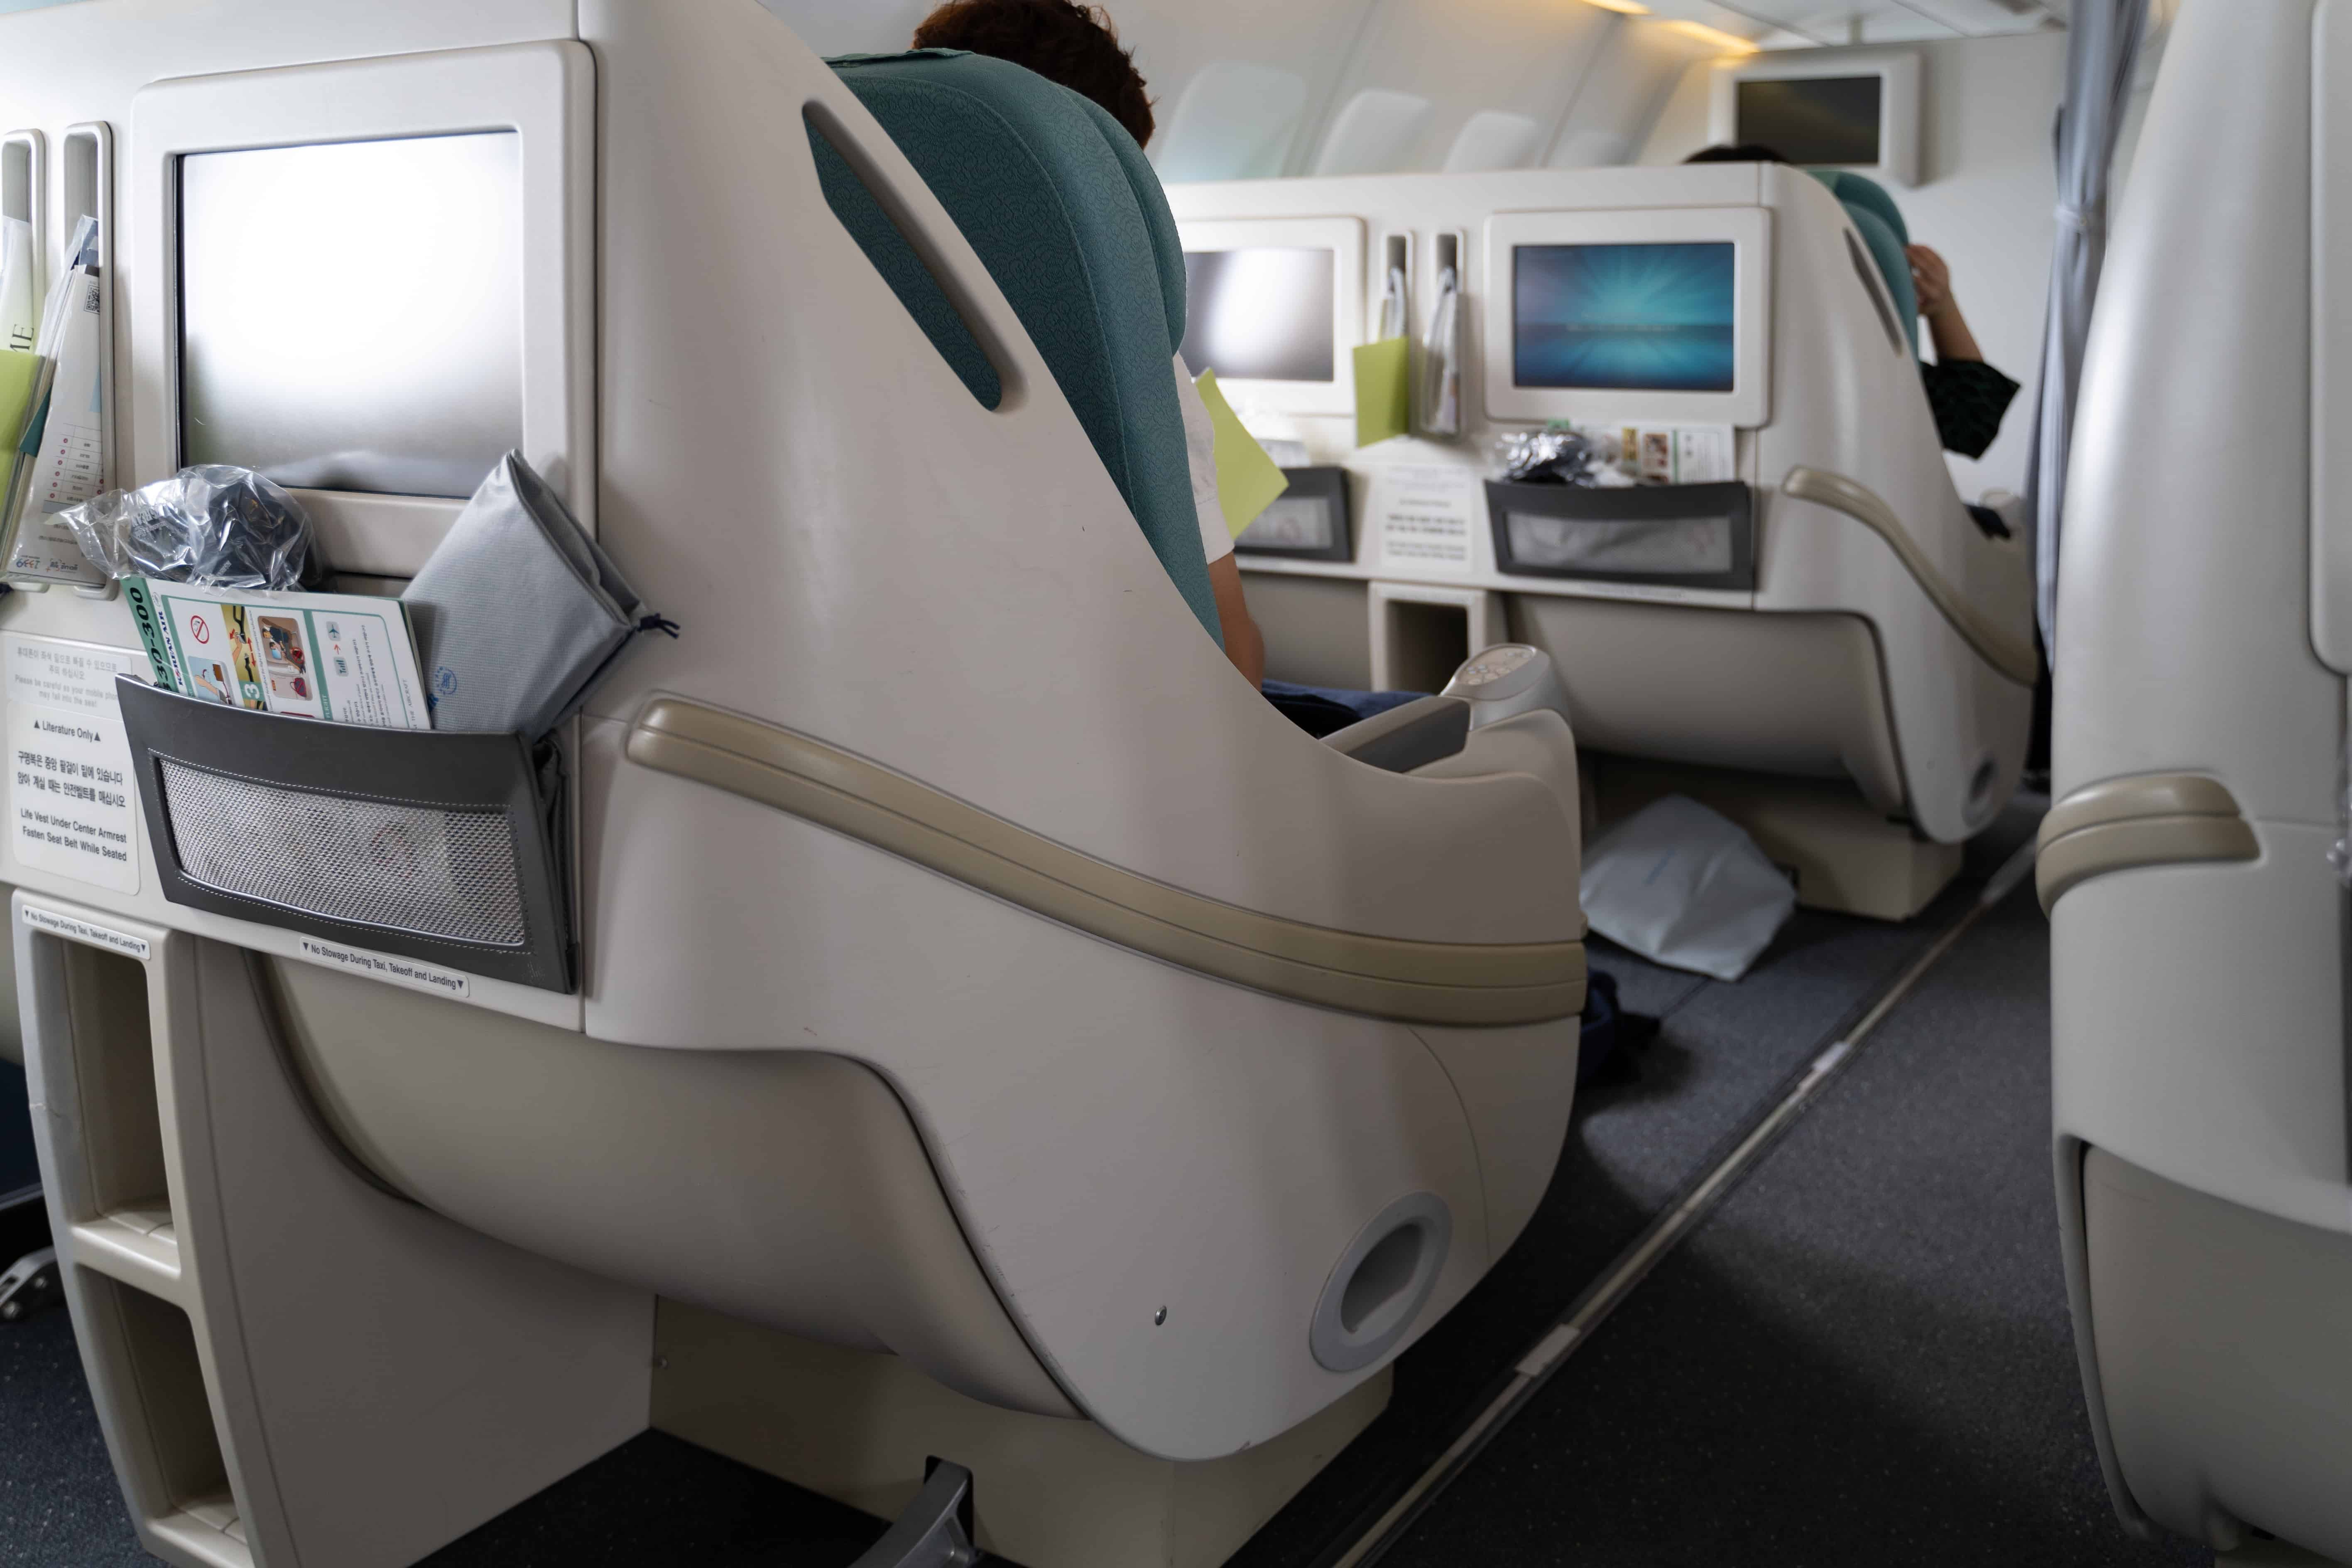 Korean Airlines A330 Seat Side View